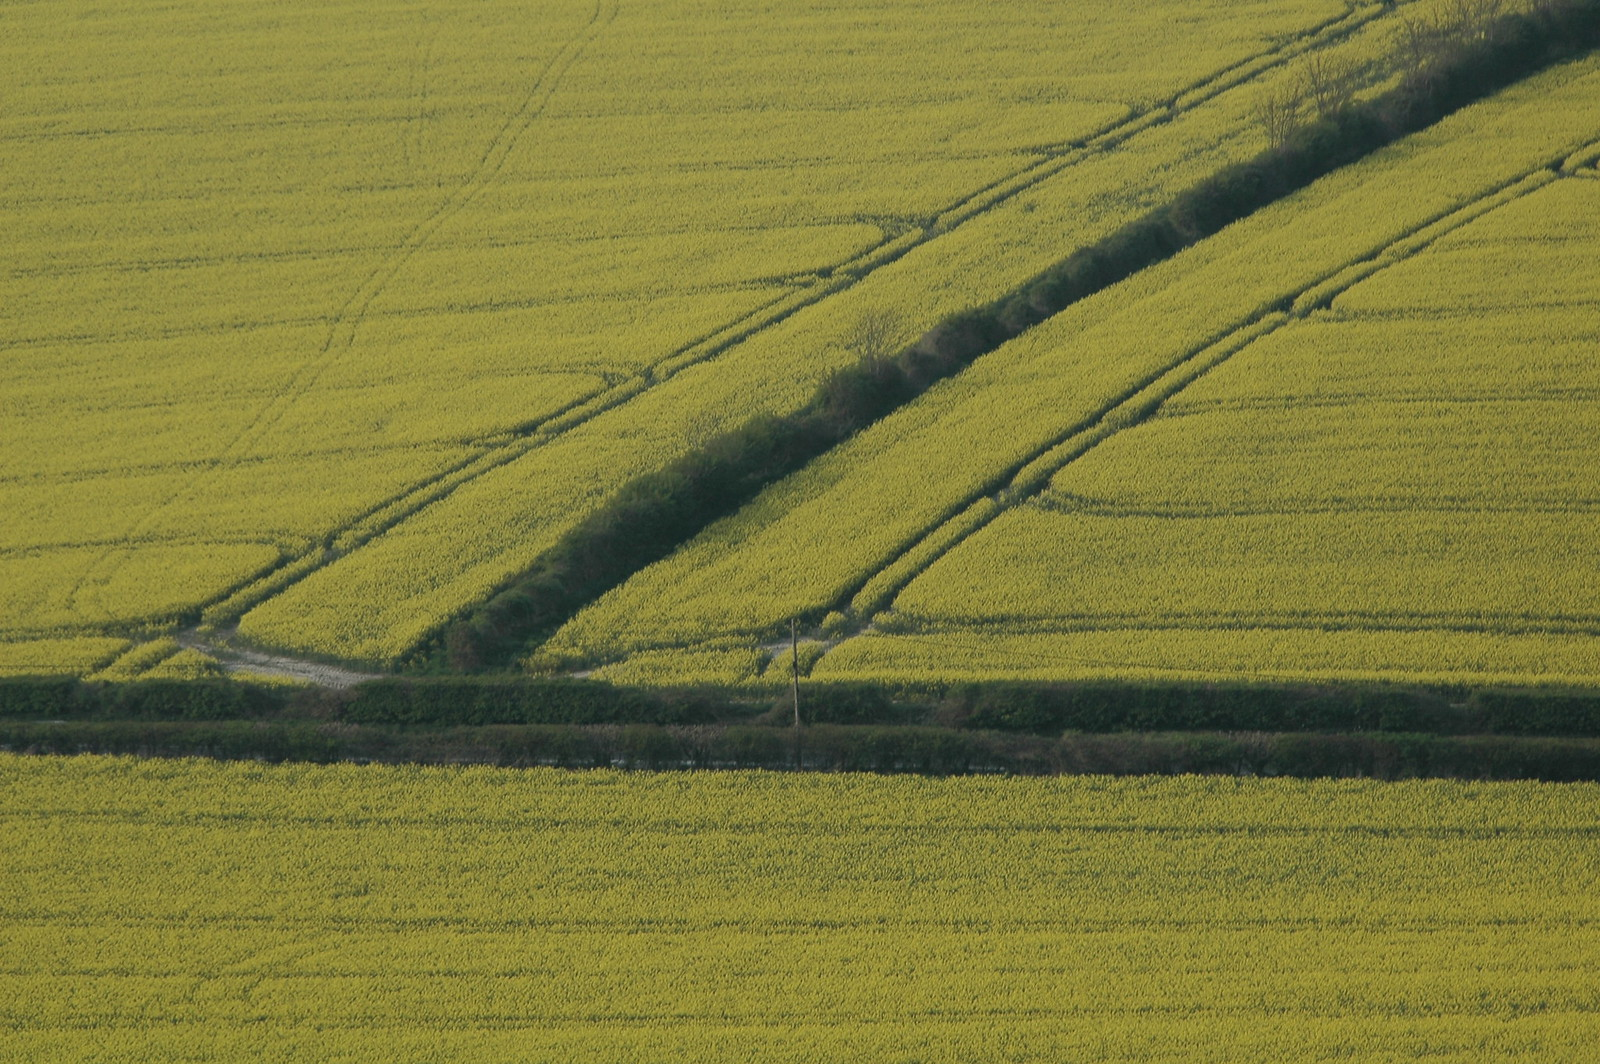 Billinghurst to Amberley Field patterns